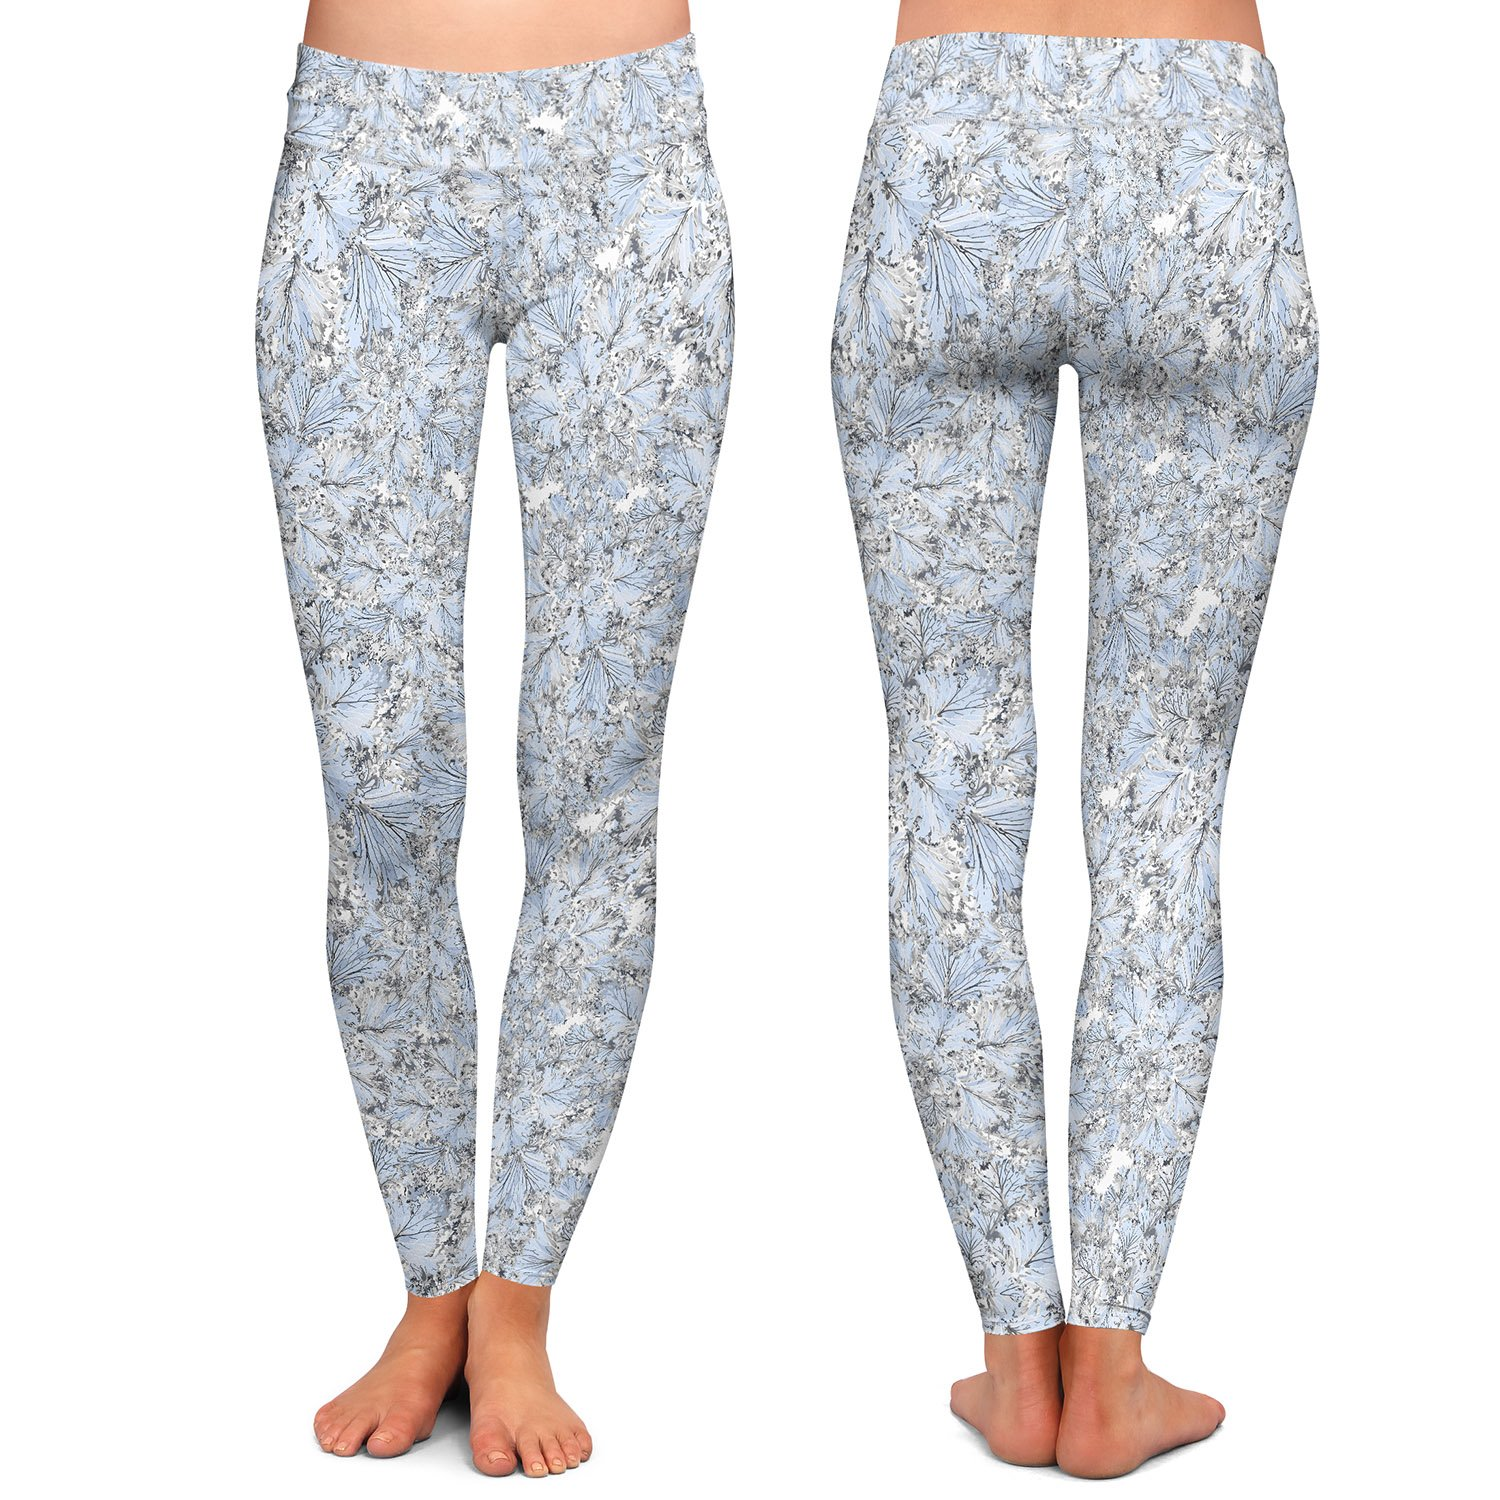 Blue Flowers Athletic Yoga Leggings from DiaNoche Designs by Julia Grifol